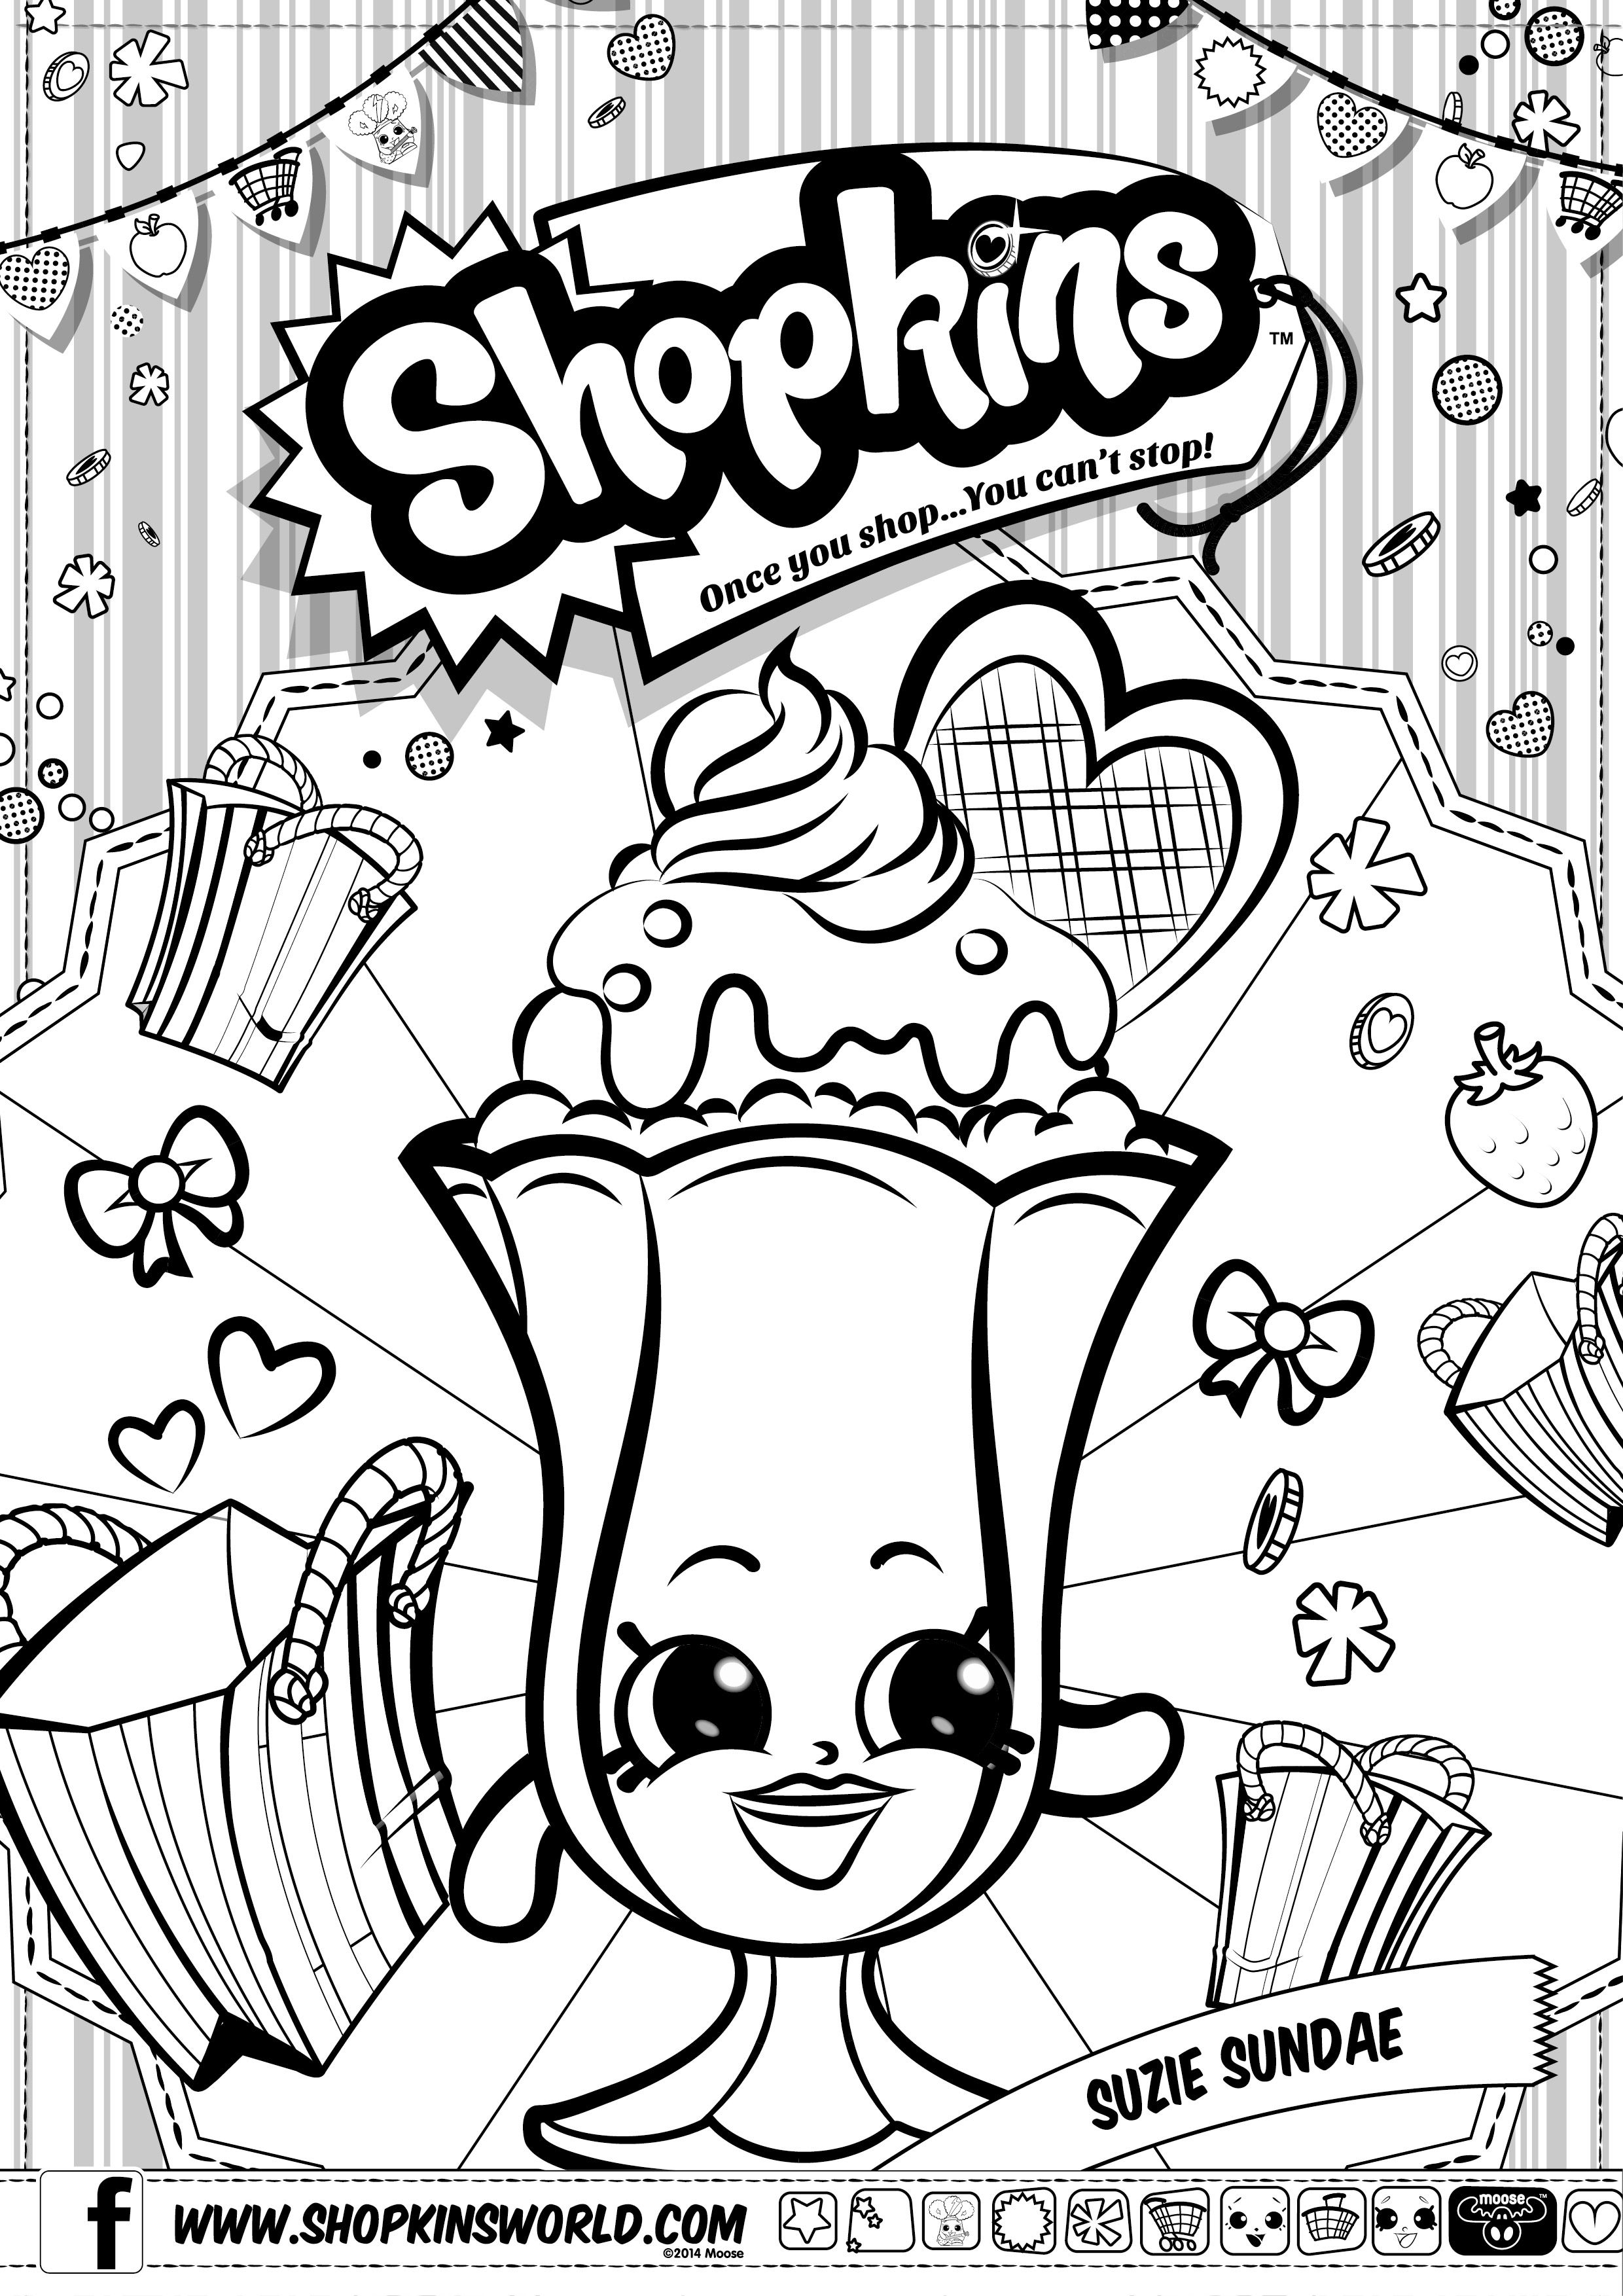 shopkins coloring pages | Addison | Pinterest | Dibujos para ...